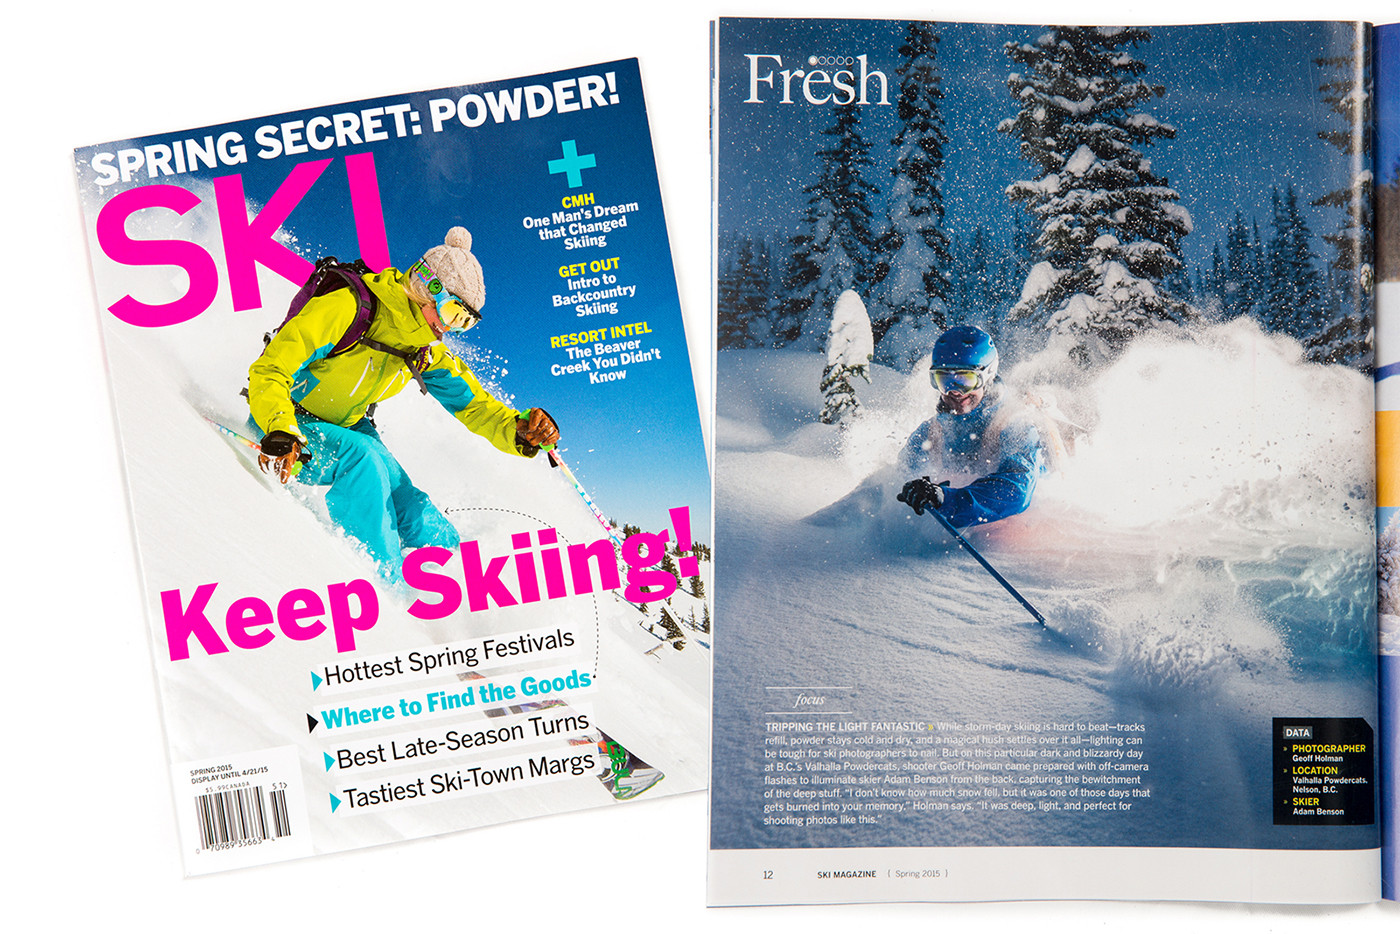 A Full Page Full of Powder in SKI Magazine!